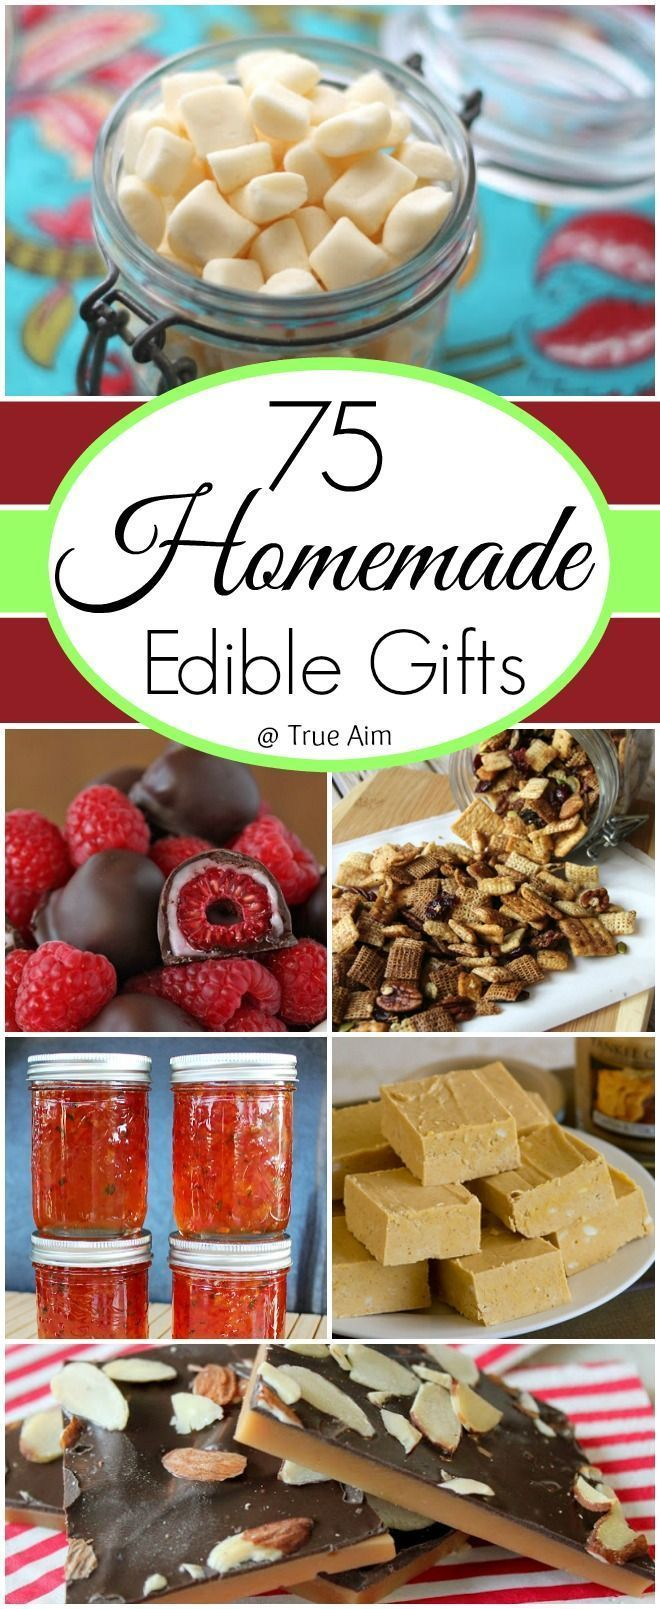 75 homemade edible gift ideas homemade truffles bark recipe and 75 homemade edible gift ideas true aim forumfinder Images